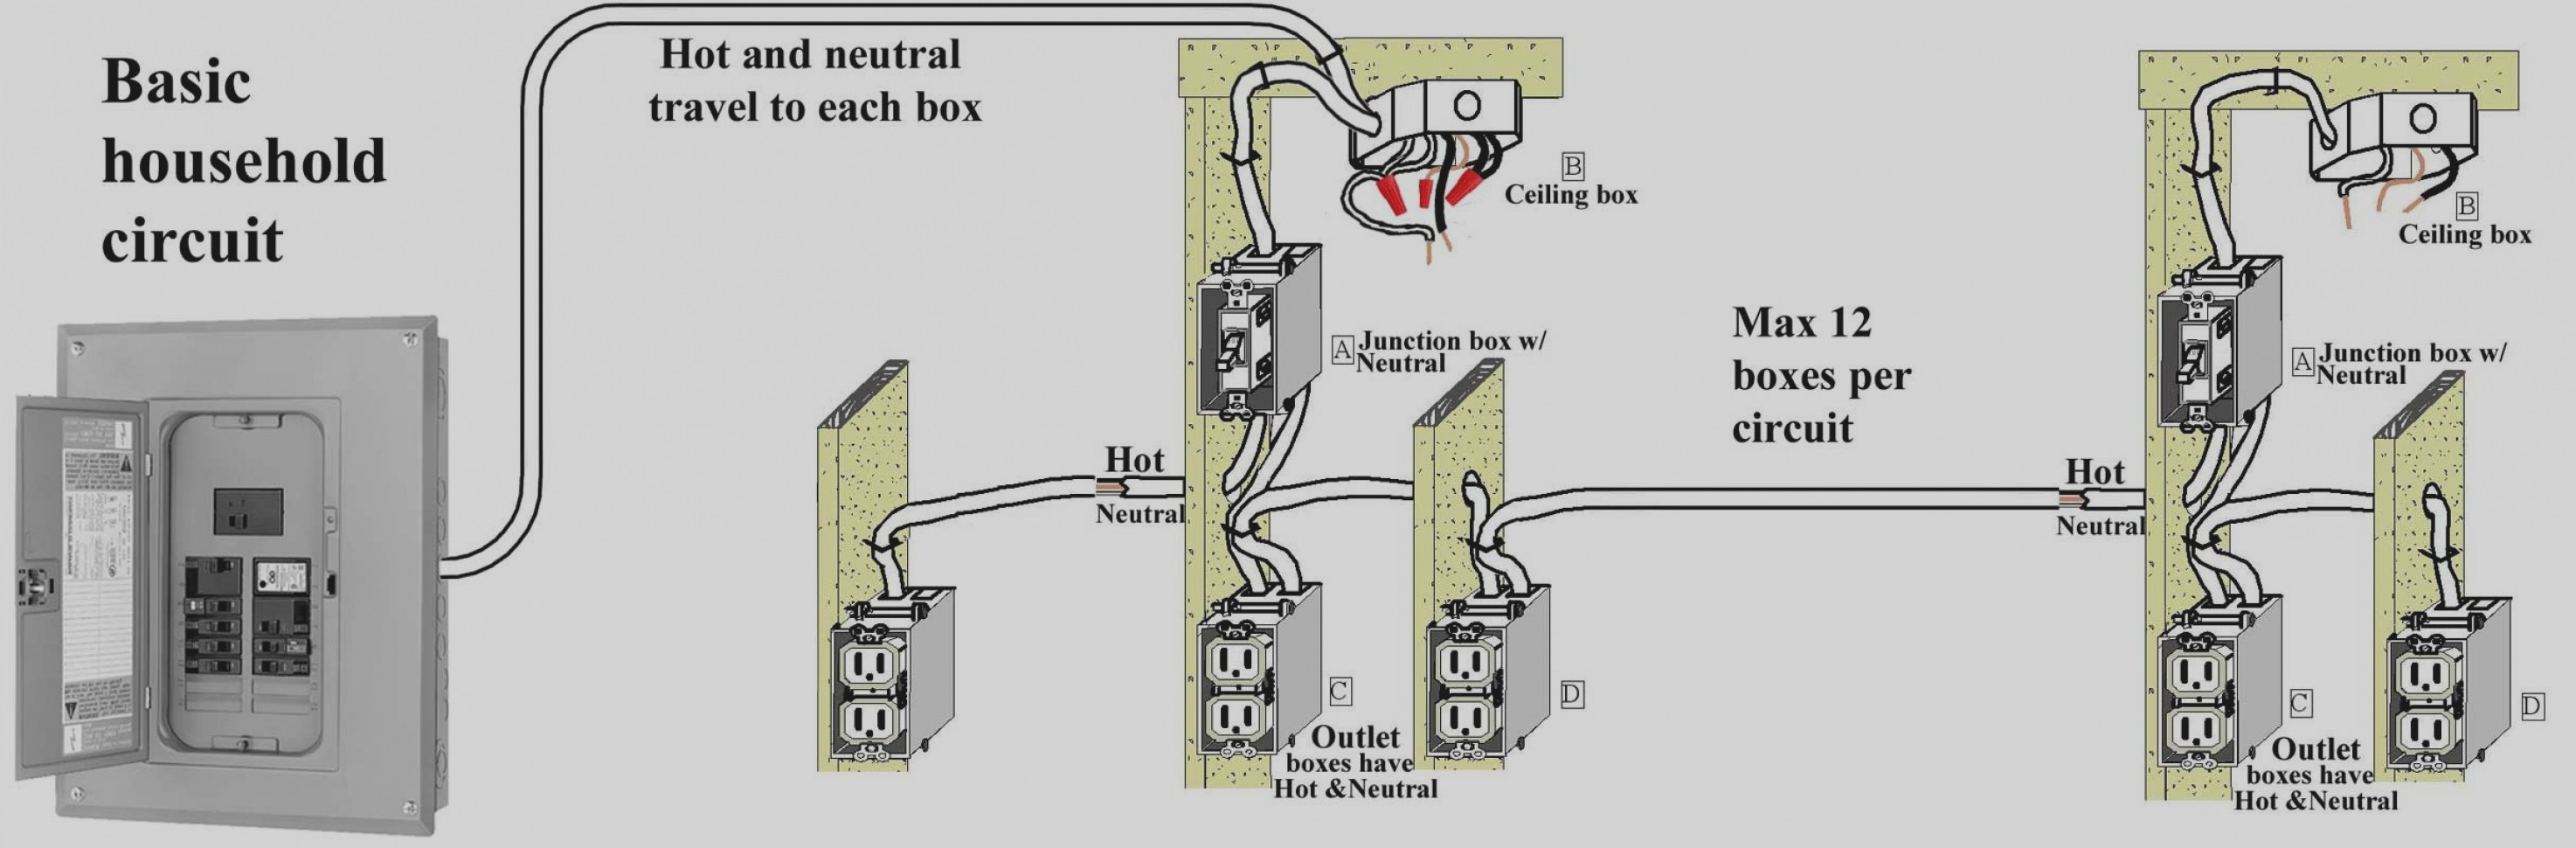 Basic Home Wiring Diagrams Trend Basic Household Wiring Diagram Switch Nz Bathroom